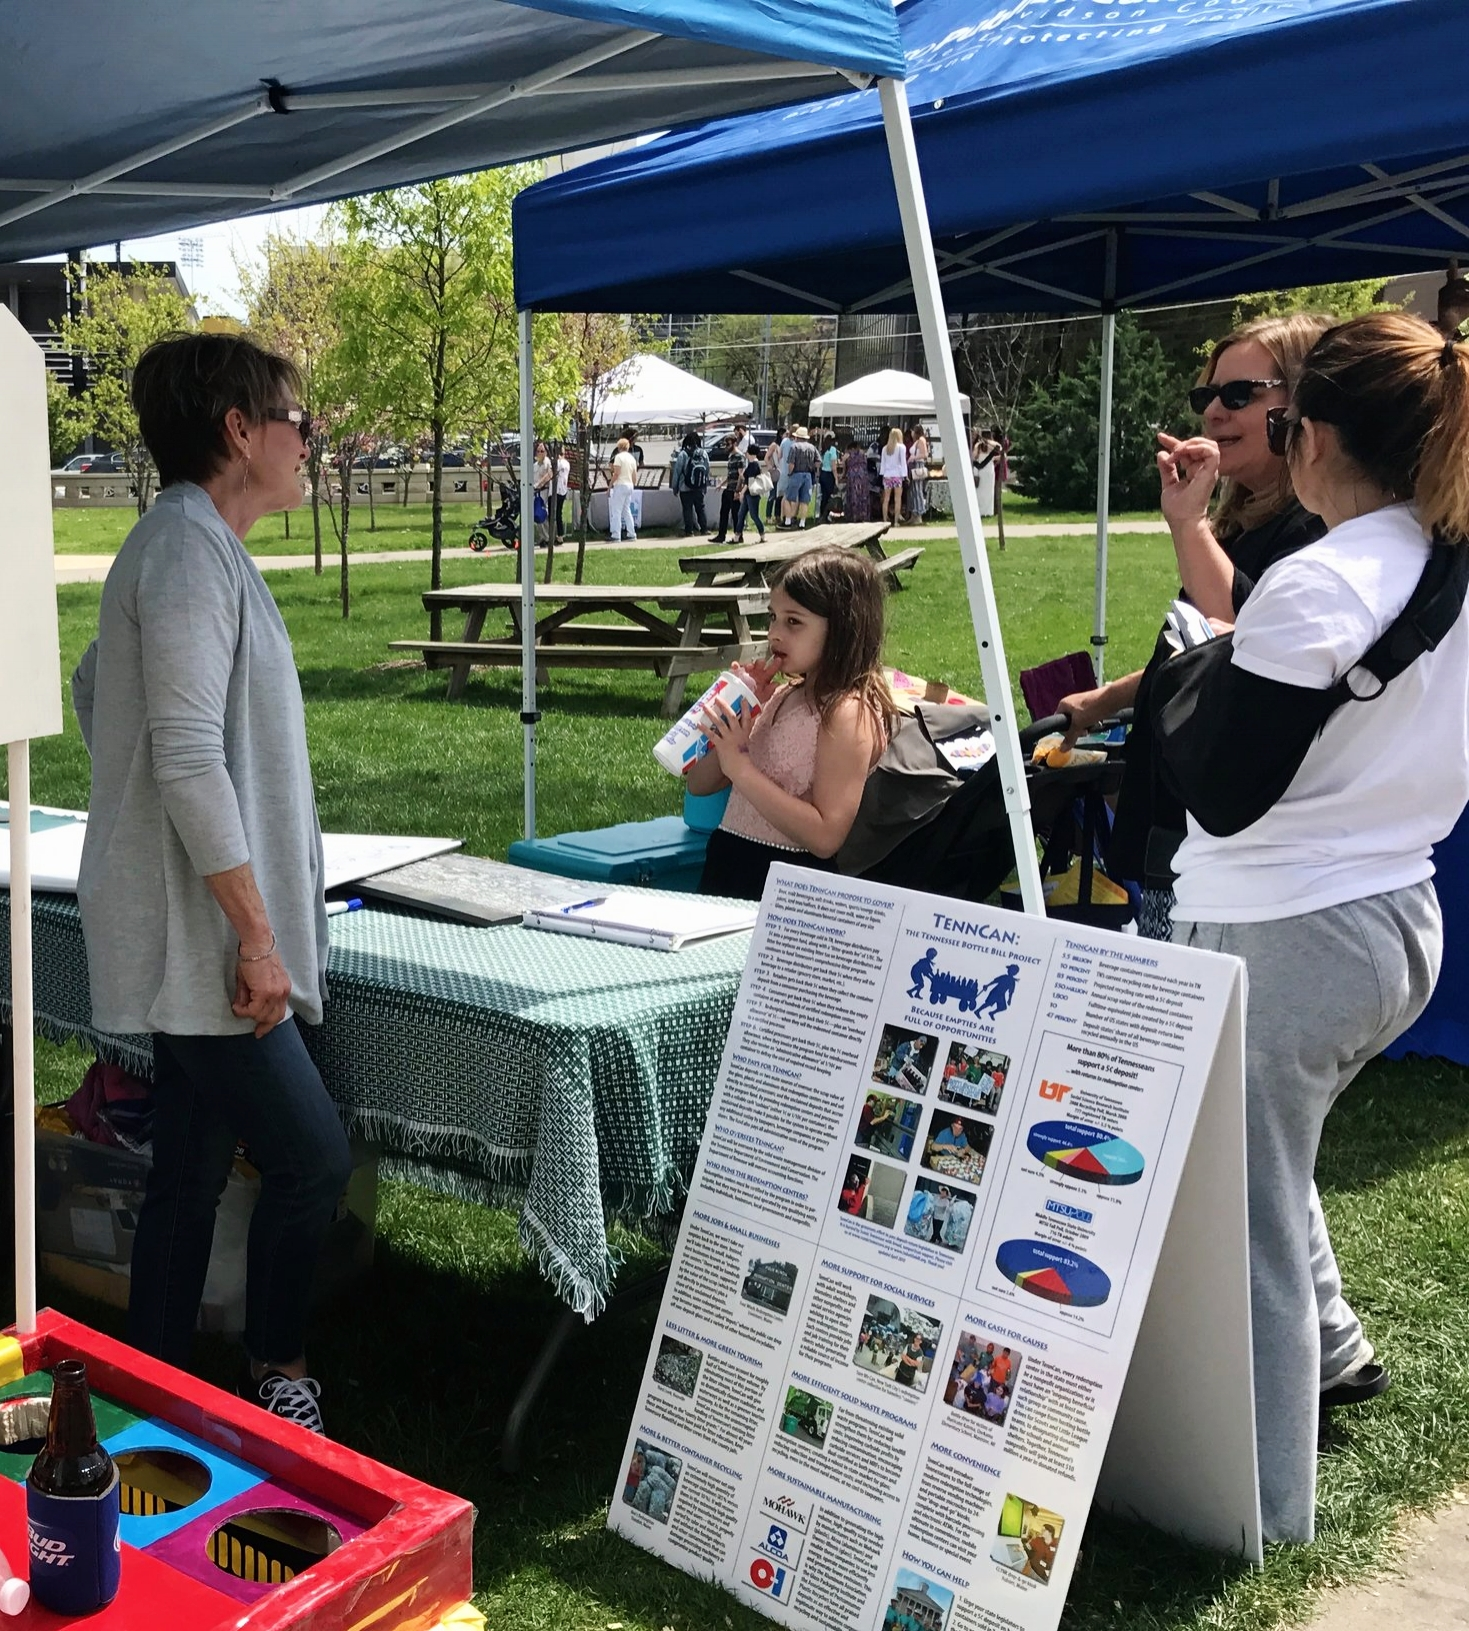 Susan Appelt explains TennCan to interested festival-goers.